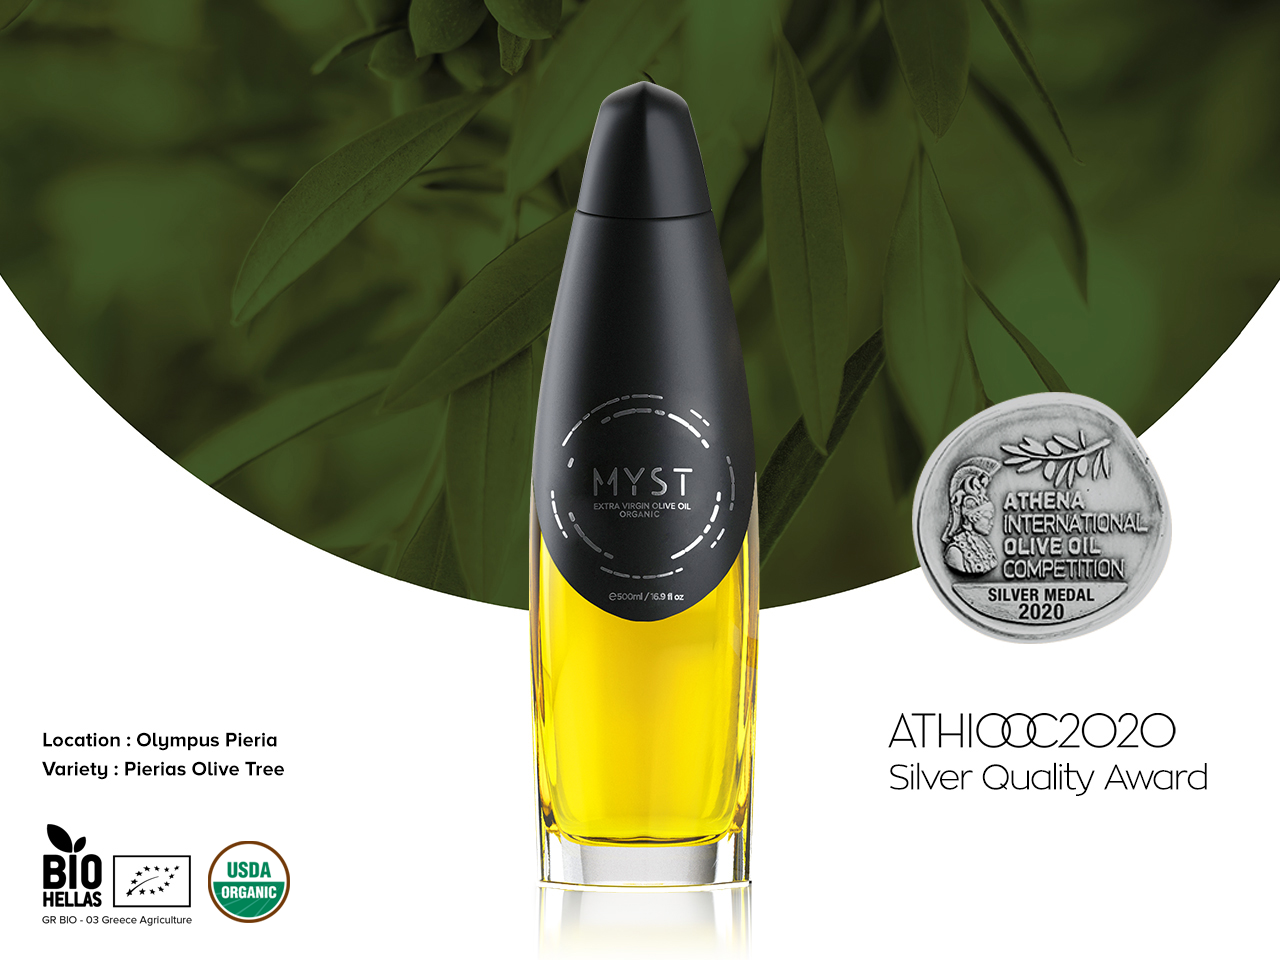 Quality Silver Award ATHIOOC2020